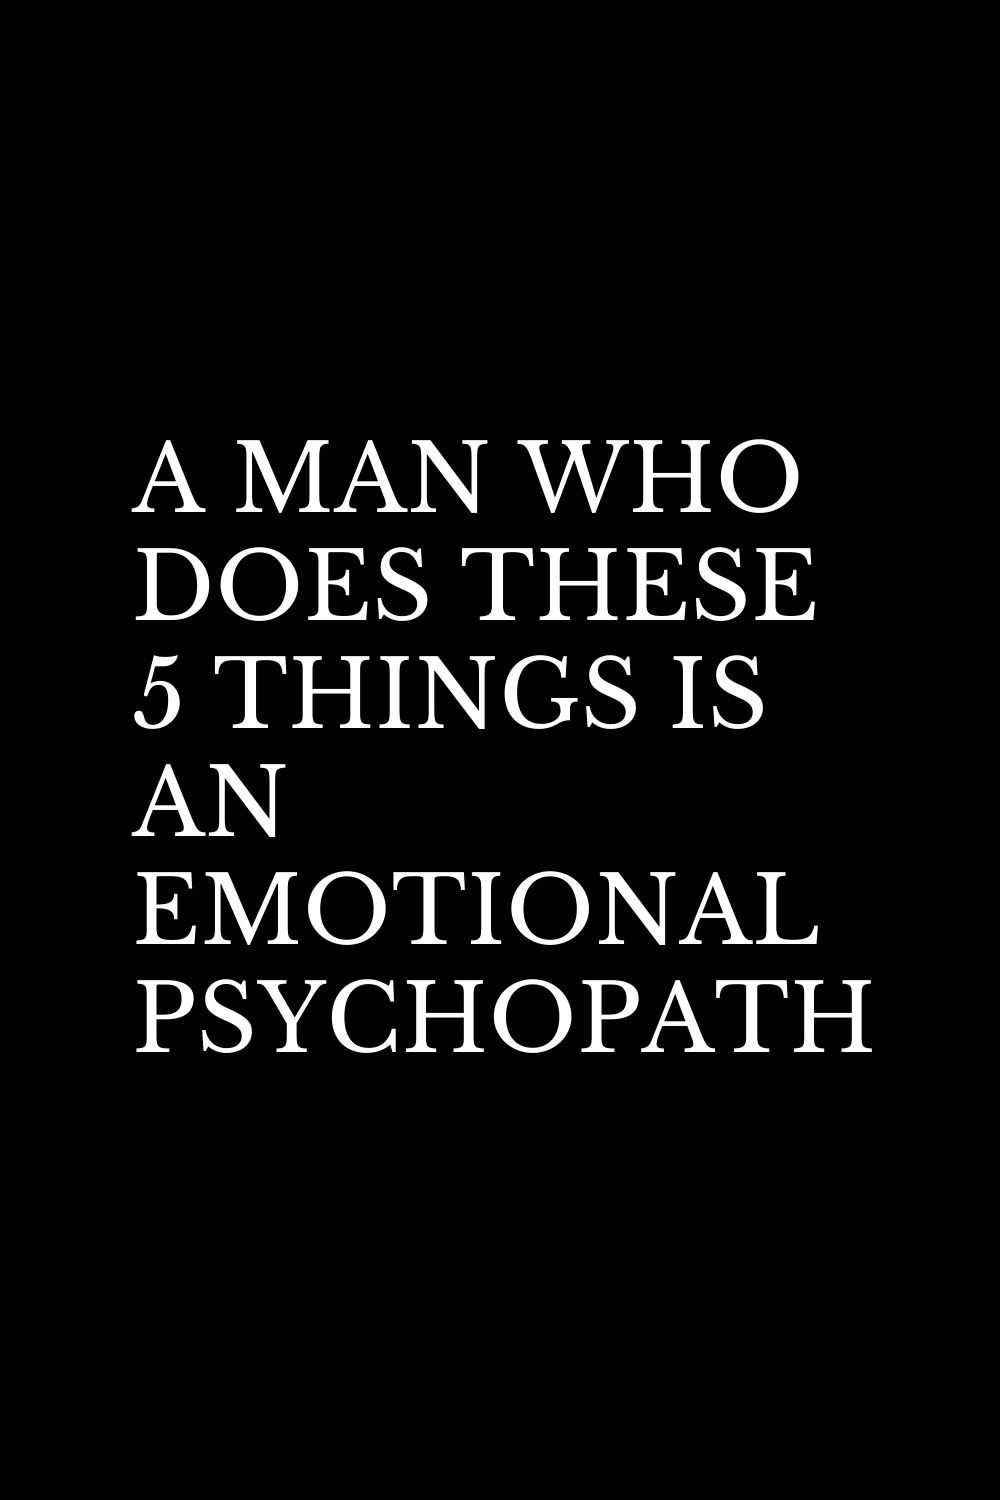 A MAN WHO DOES THESE 5 THINGS IS AN EMOTIONAL PSYC